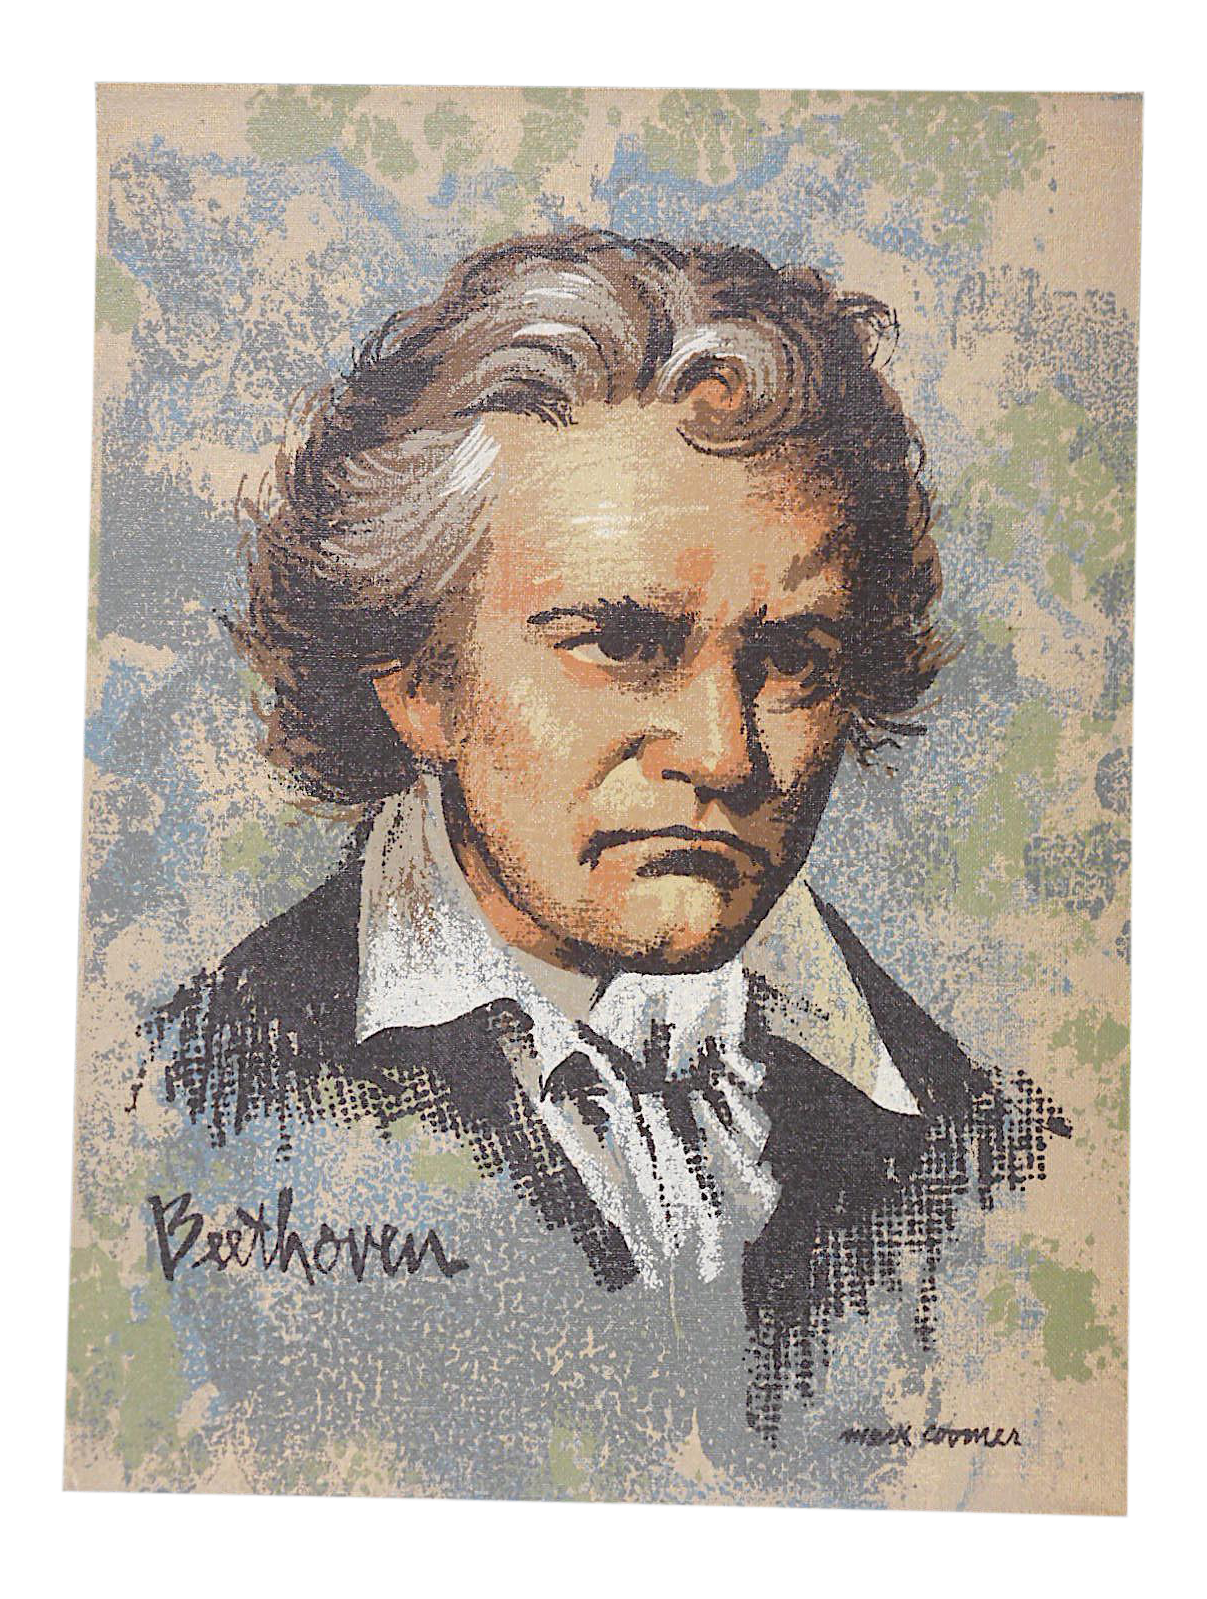 Beethoven drawing lithograph. Vintage ltd ed serigraph